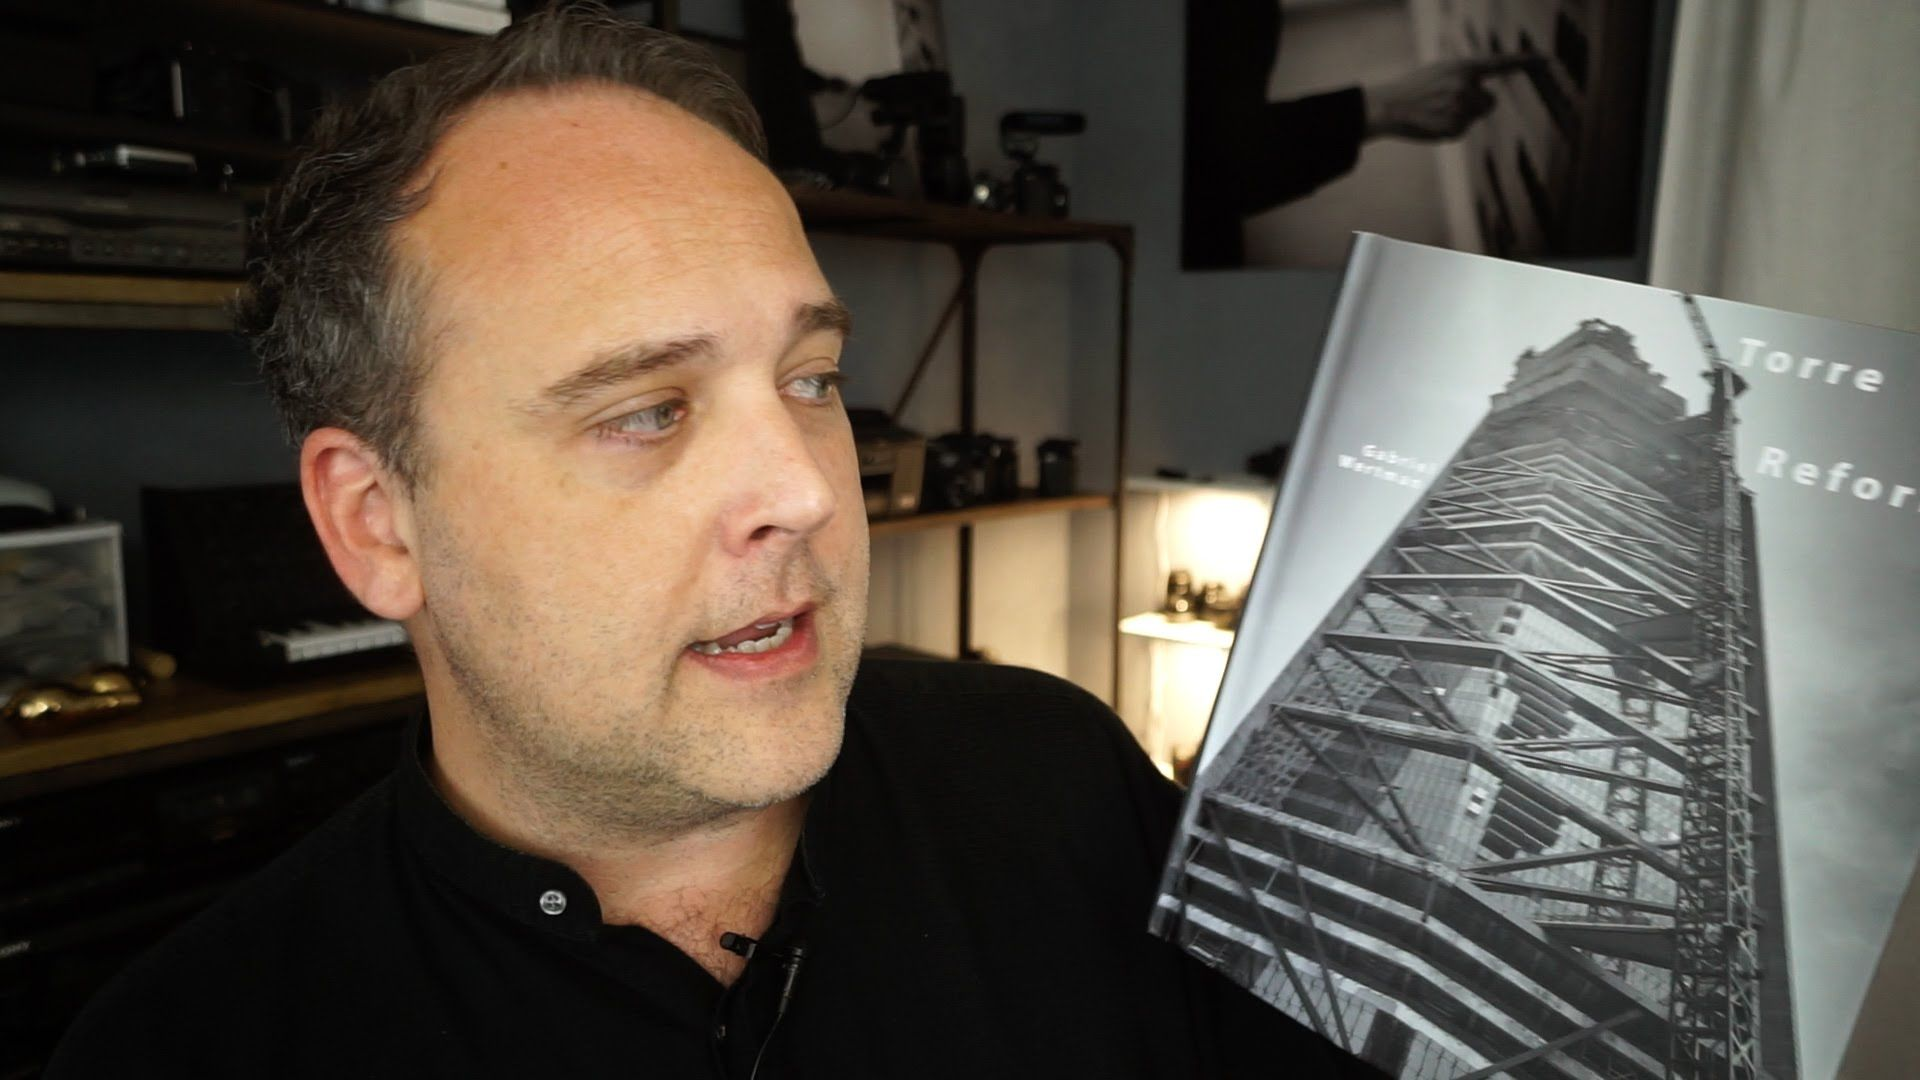 SERIES BASED PHOTOGRAPHY  I cannot recommend Ted Forbes enough.  He produces superb videos, on a variety of photographic subjects - and refreshingly, it's not all about equipment, but photographic art history, philosophy, creativity.  Brilliant.